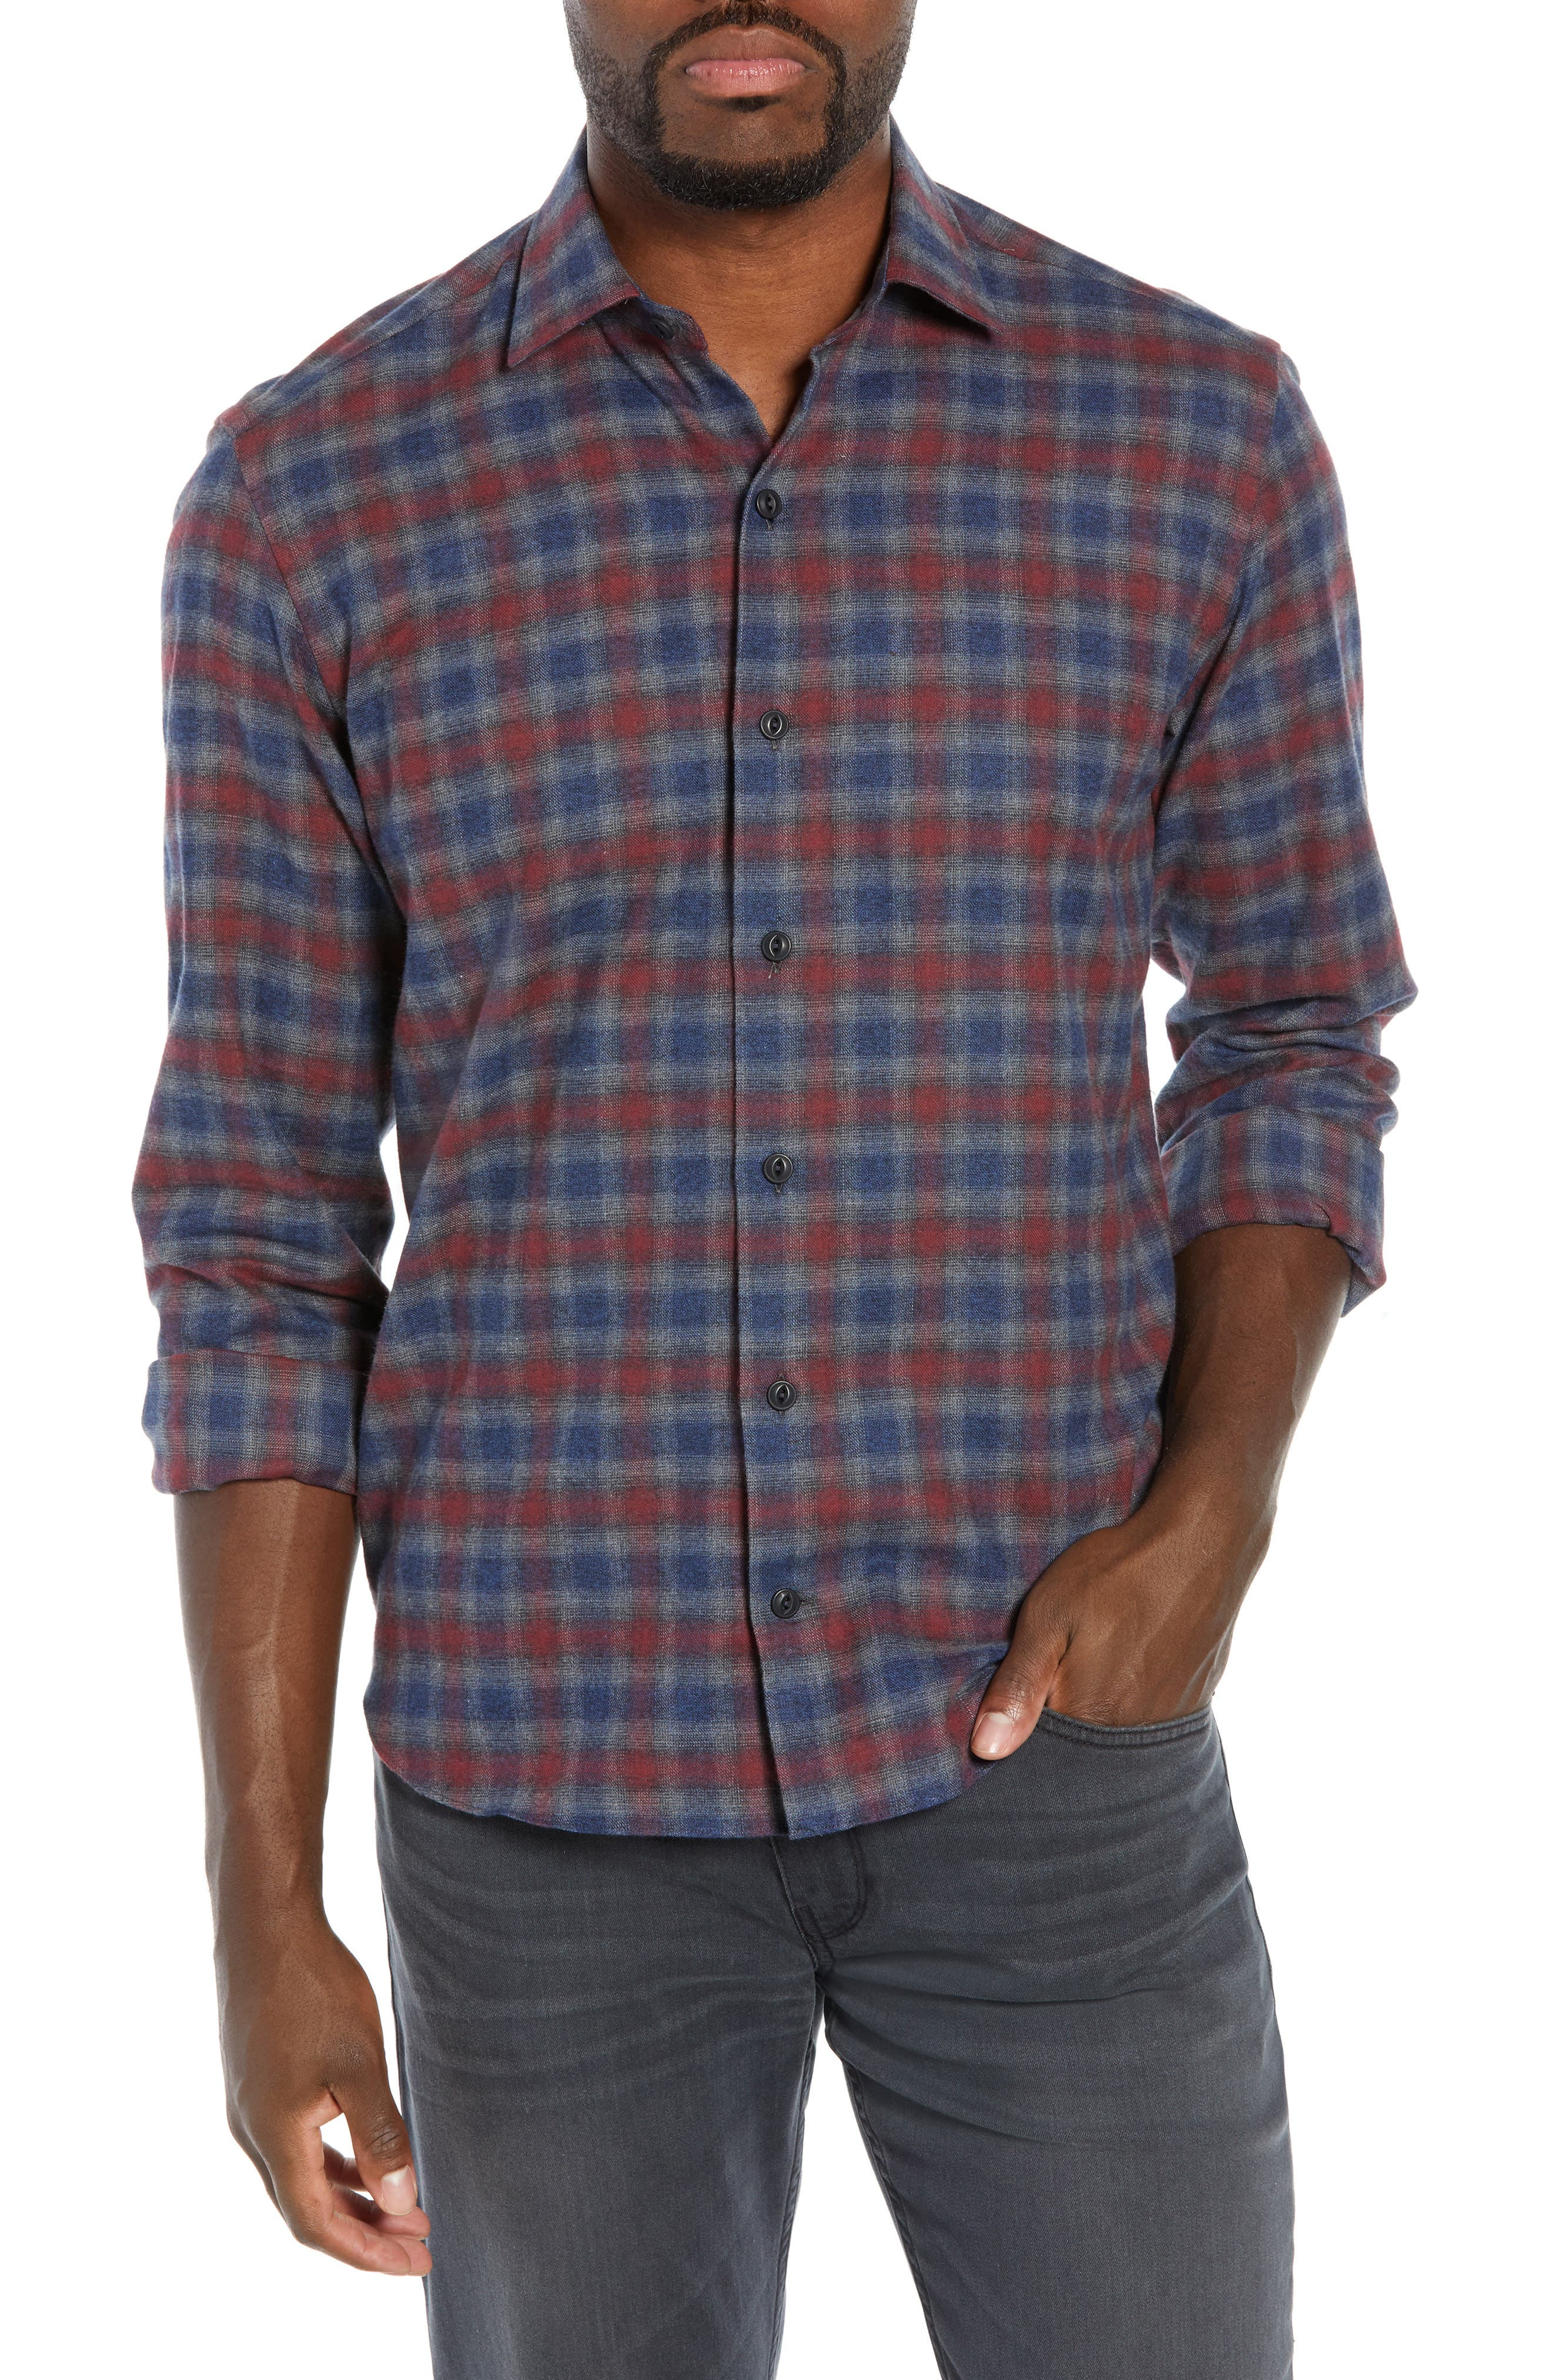 CULTURATA Supersoft Tailored Fit Check Sport Shirt in Charcoal